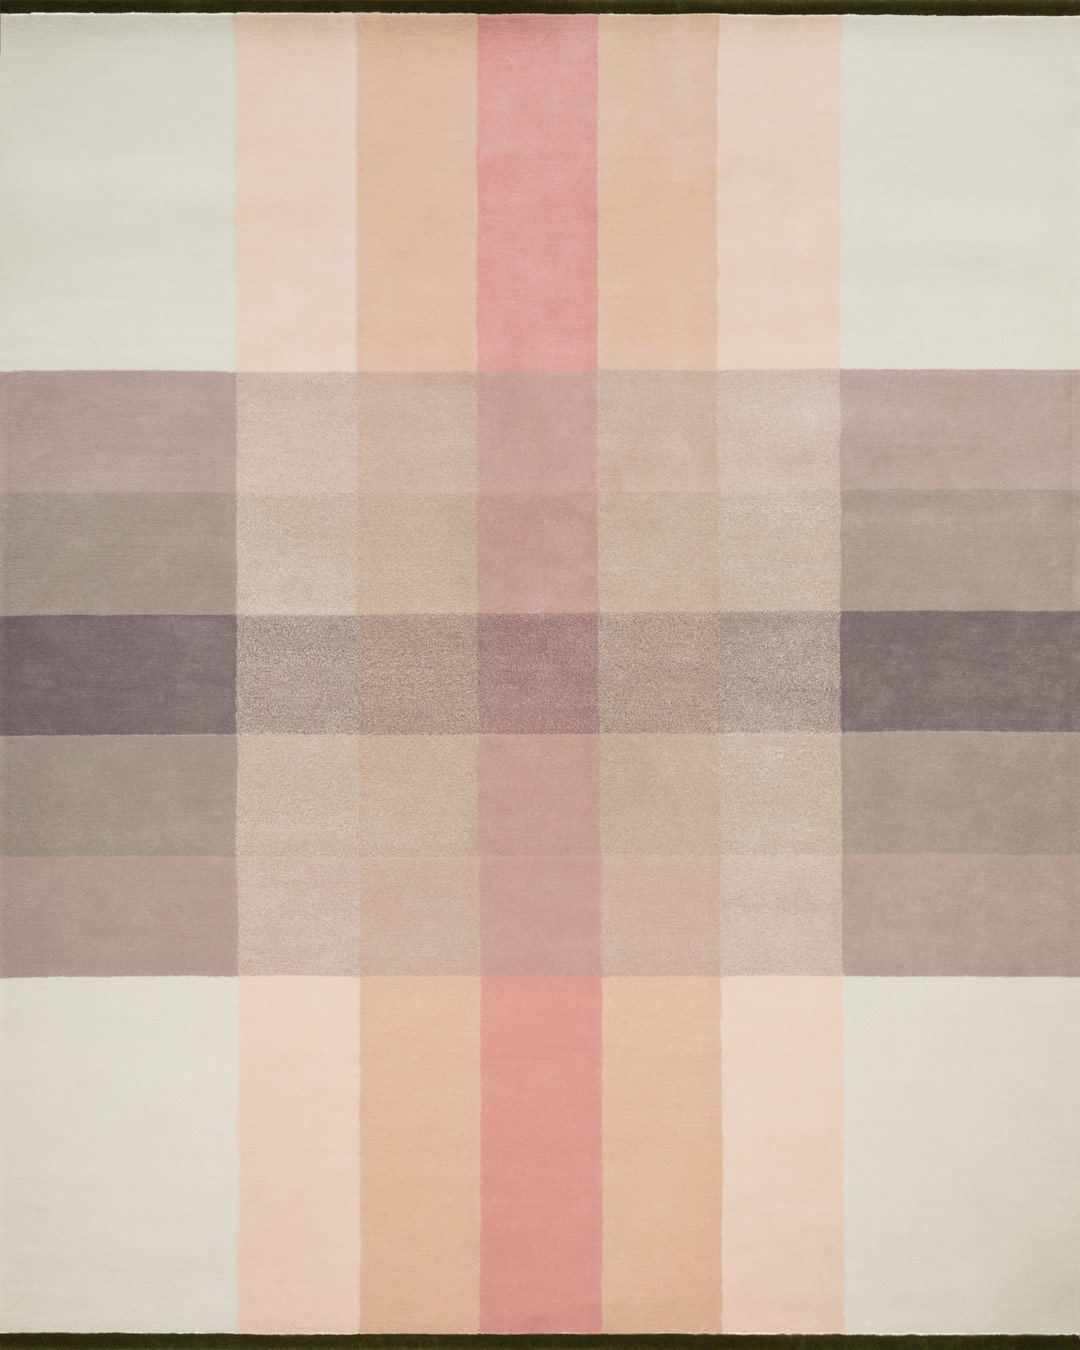 overhead of crossing rug by bernabeifreeman in large checkered pattern in pale pink beige and brown